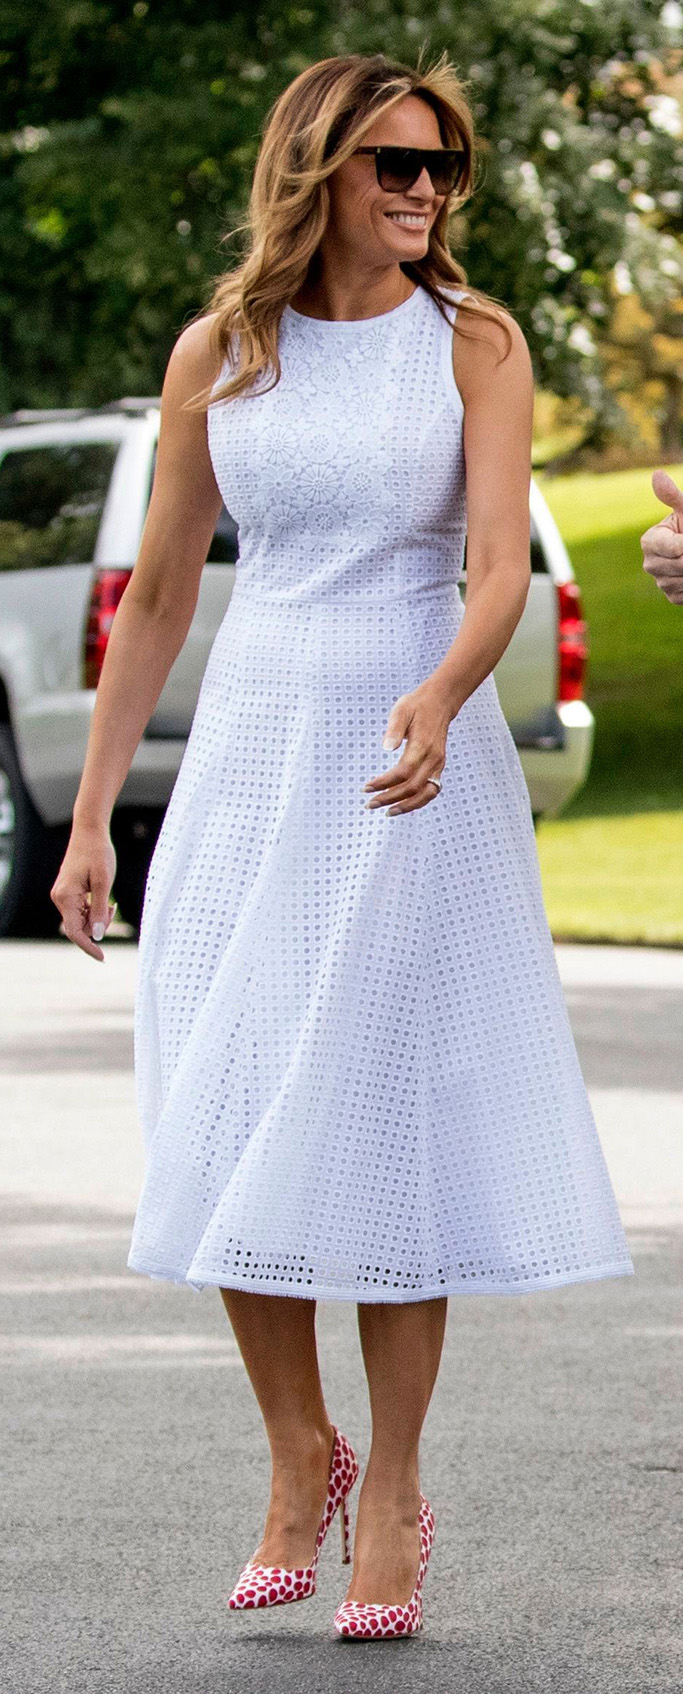 white Andrew GN eyelet dress, manolo blahnik bb pumps white with red spots, Donald Trump, Melania Trump. President Donald Trump and first lady Melania Trump walk towards members of the media before boarding Marine One on the South Lawn of the White House in Washington, for a short trip to Andrews Air Force Base, Md., and then on to Orlando, Fla. for a rallyElection 2020 Trump, Washington, USA - 18 Jun 2019